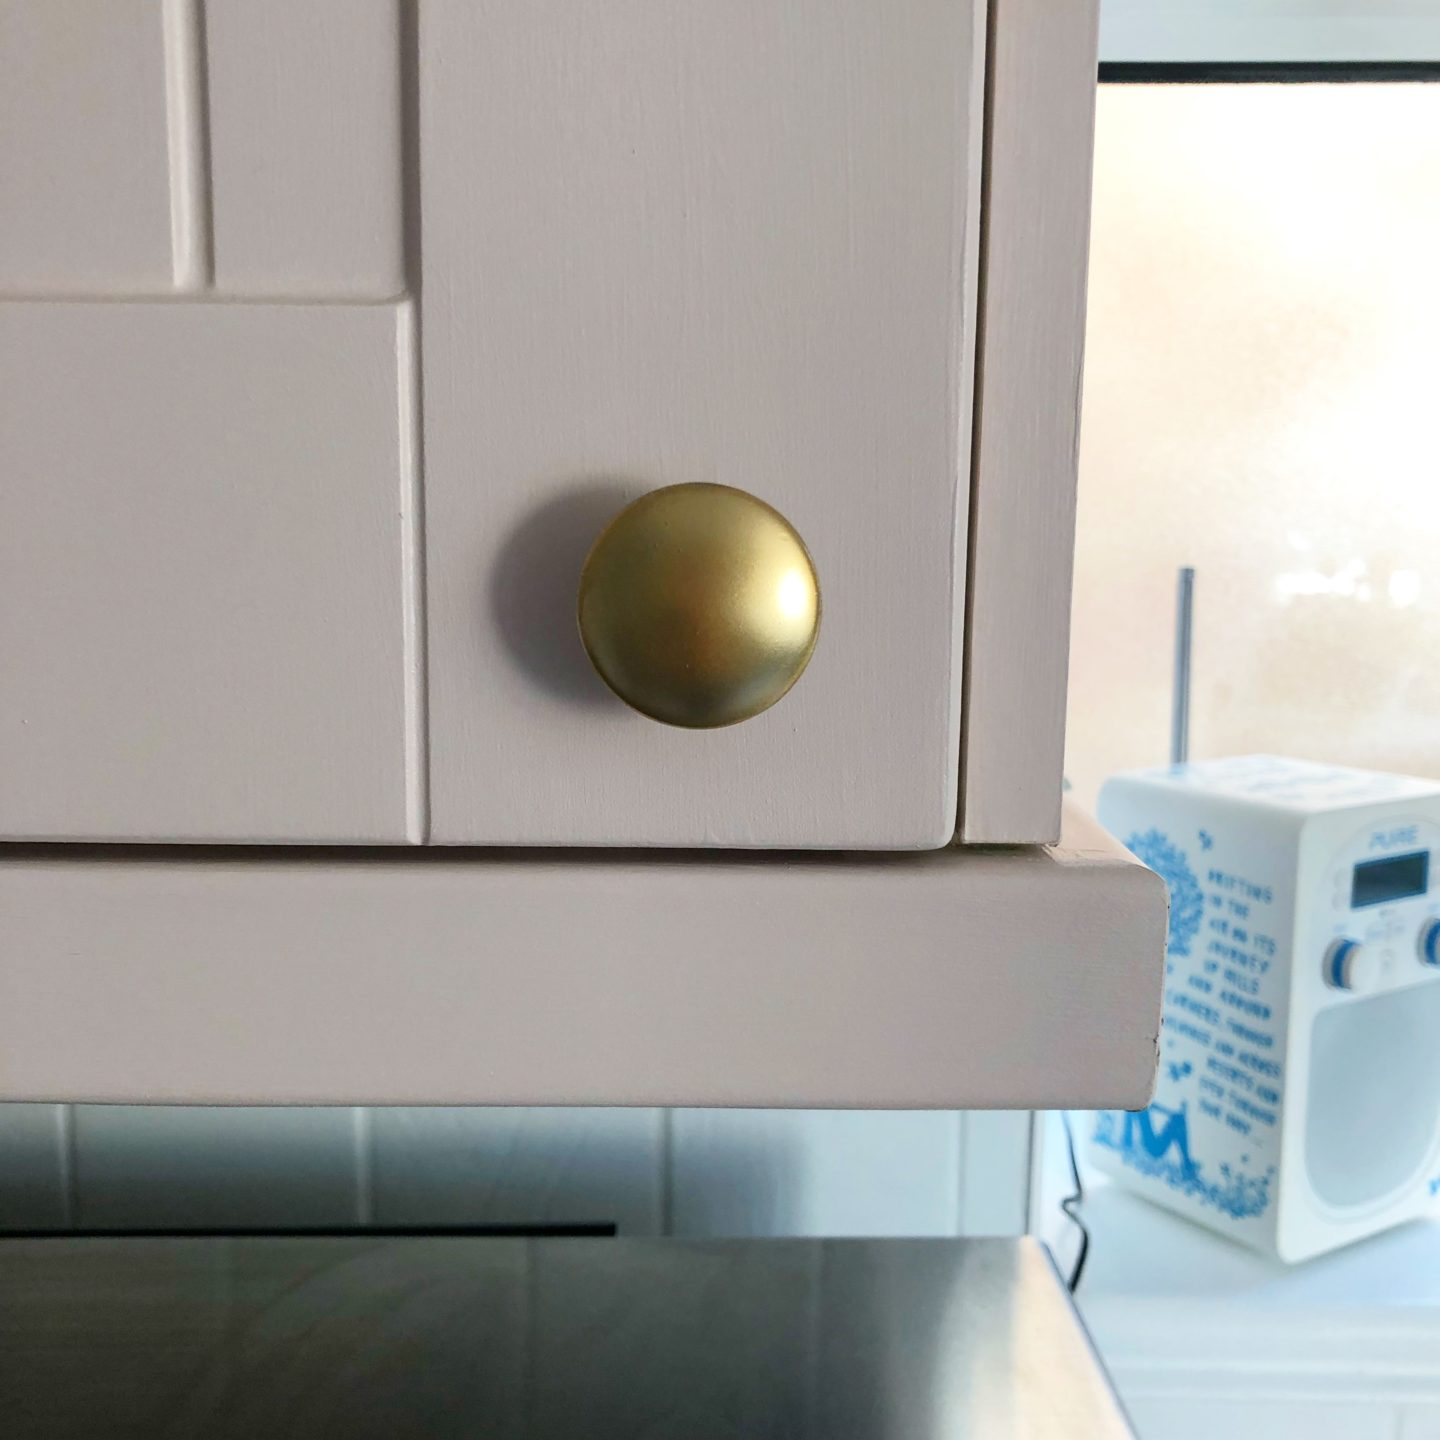 Kitchen Knob sprayed in Rustoleum Brilliant Gold